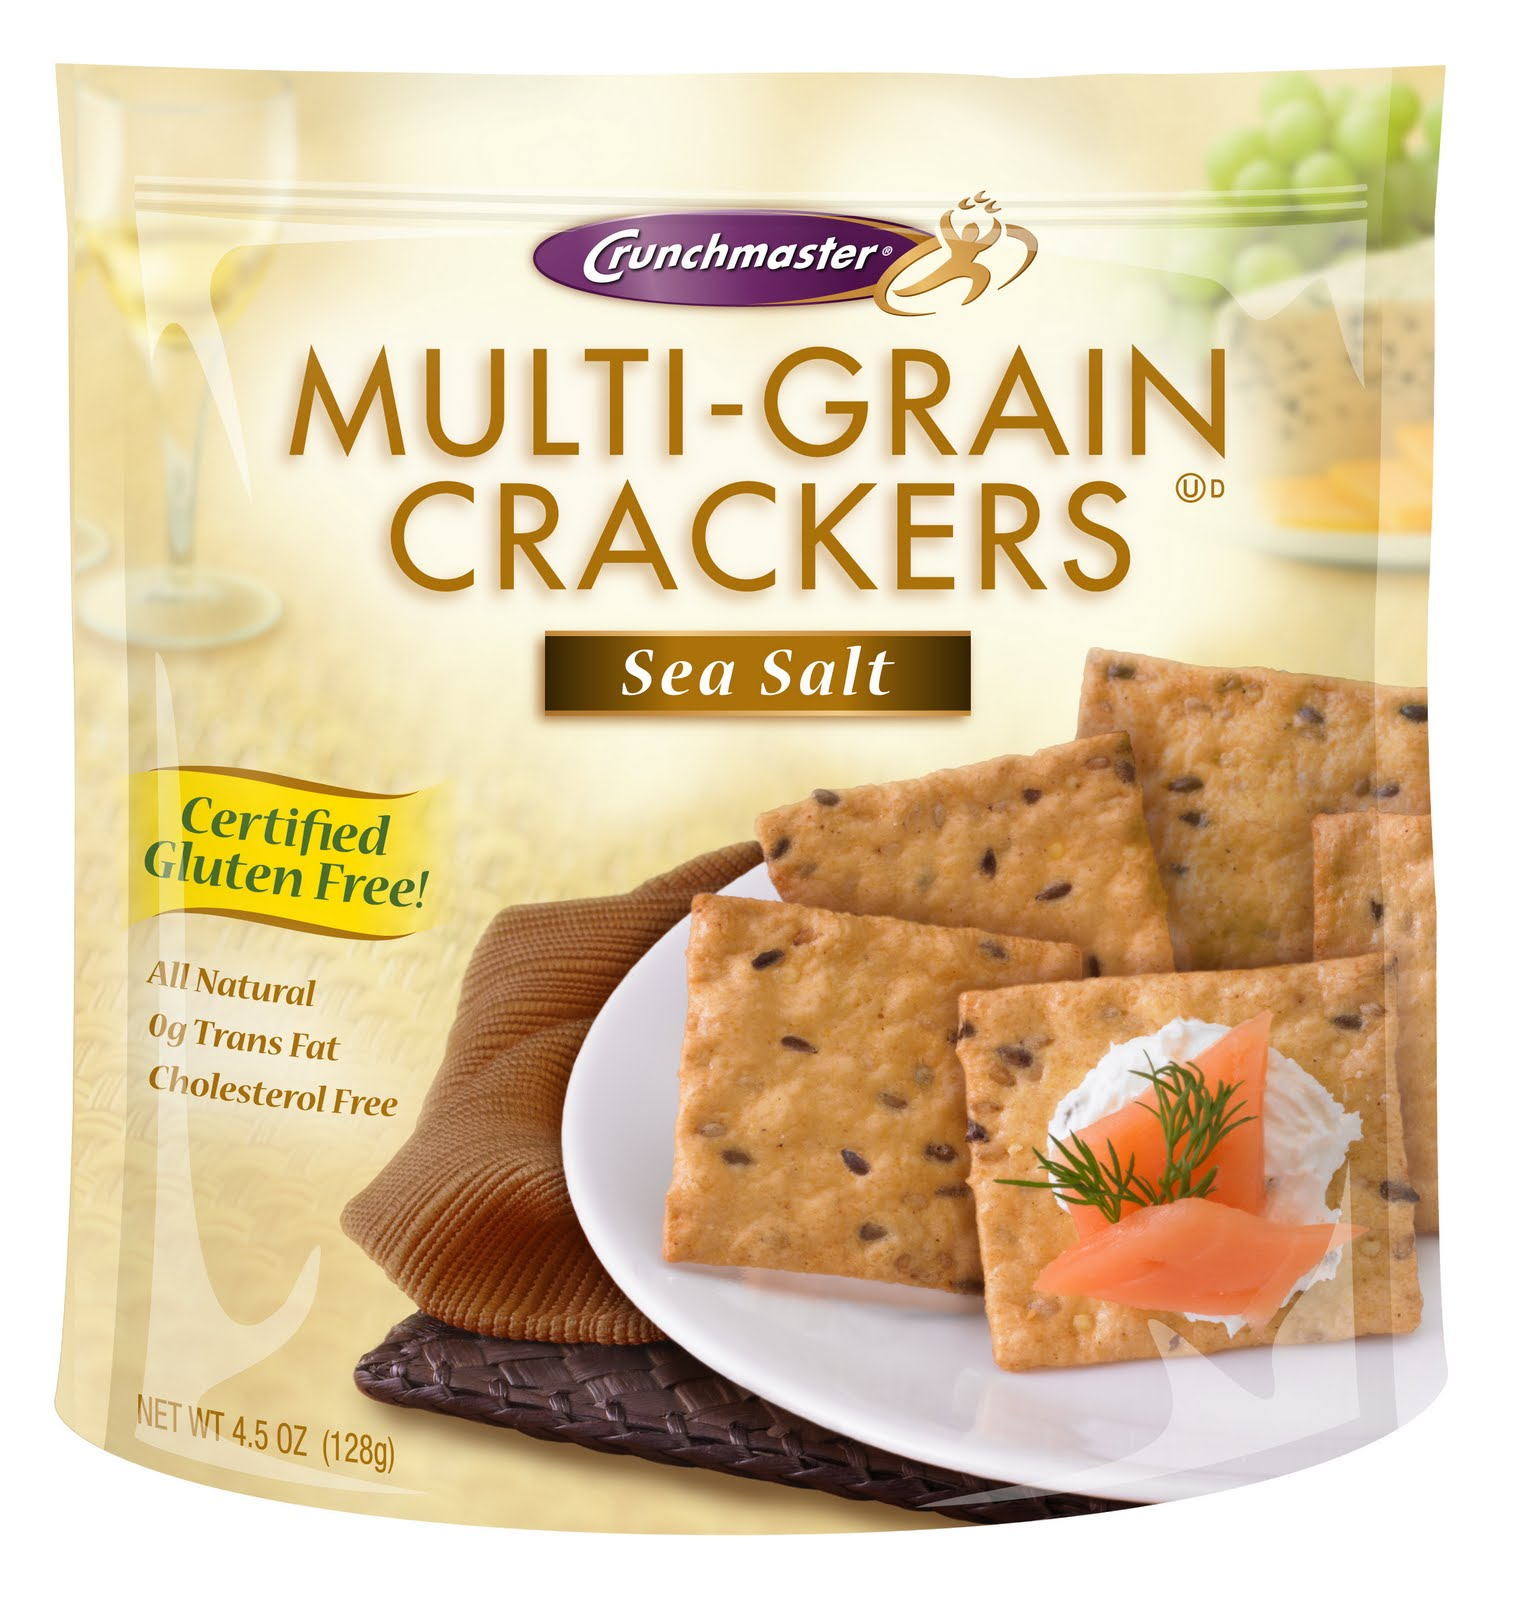 Gluten Free Crunchmaster Multi-Grain Crackers and New Crisps - Gluten ...